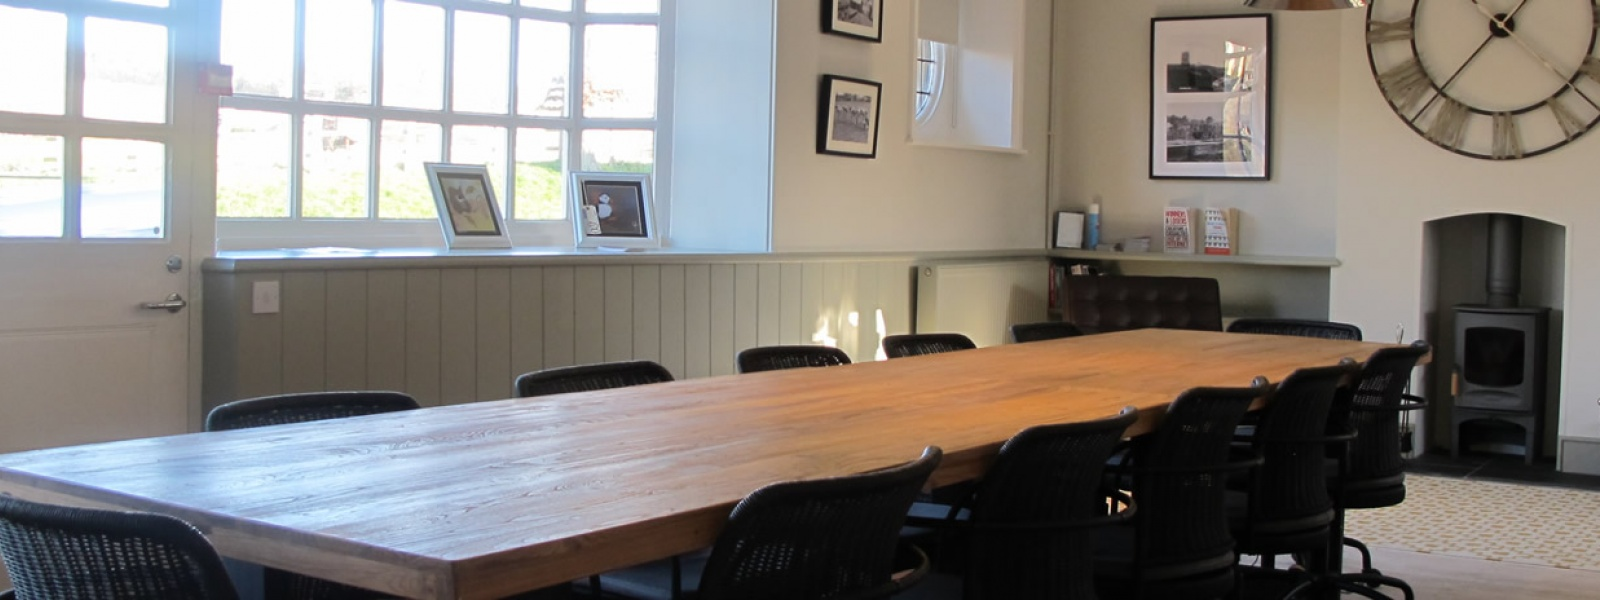 Rural Meeting Training Rooms Overbury Tewkesbury -